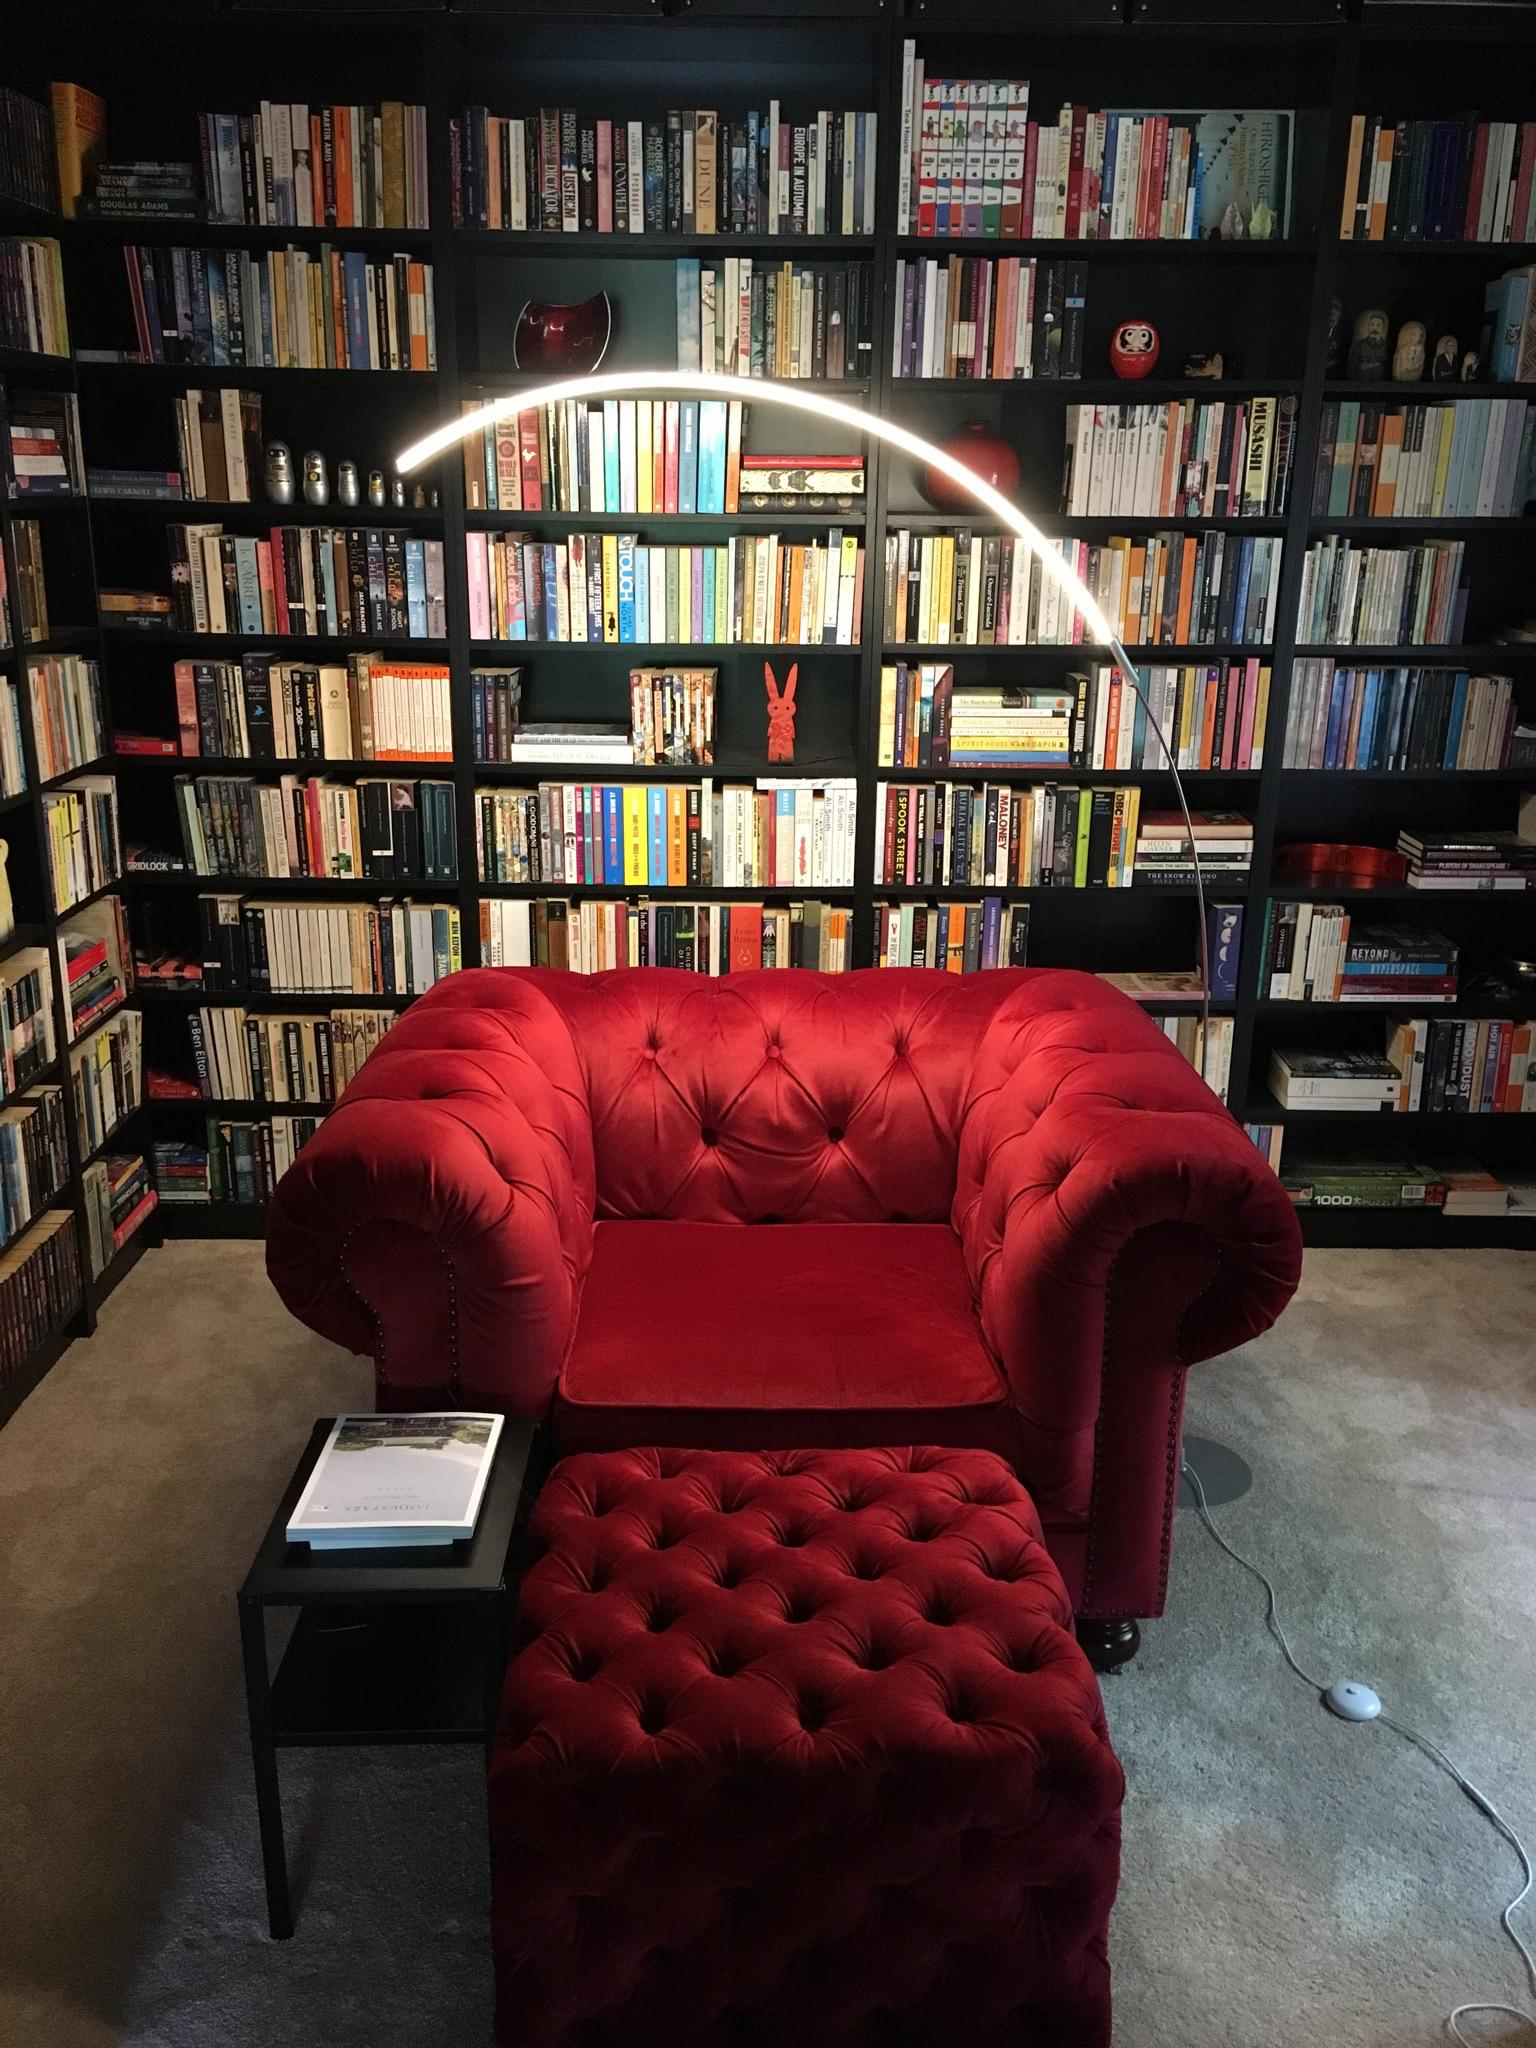 If I had this comfy library at home, I'd say goodbye to my e-reader 📚📚📚